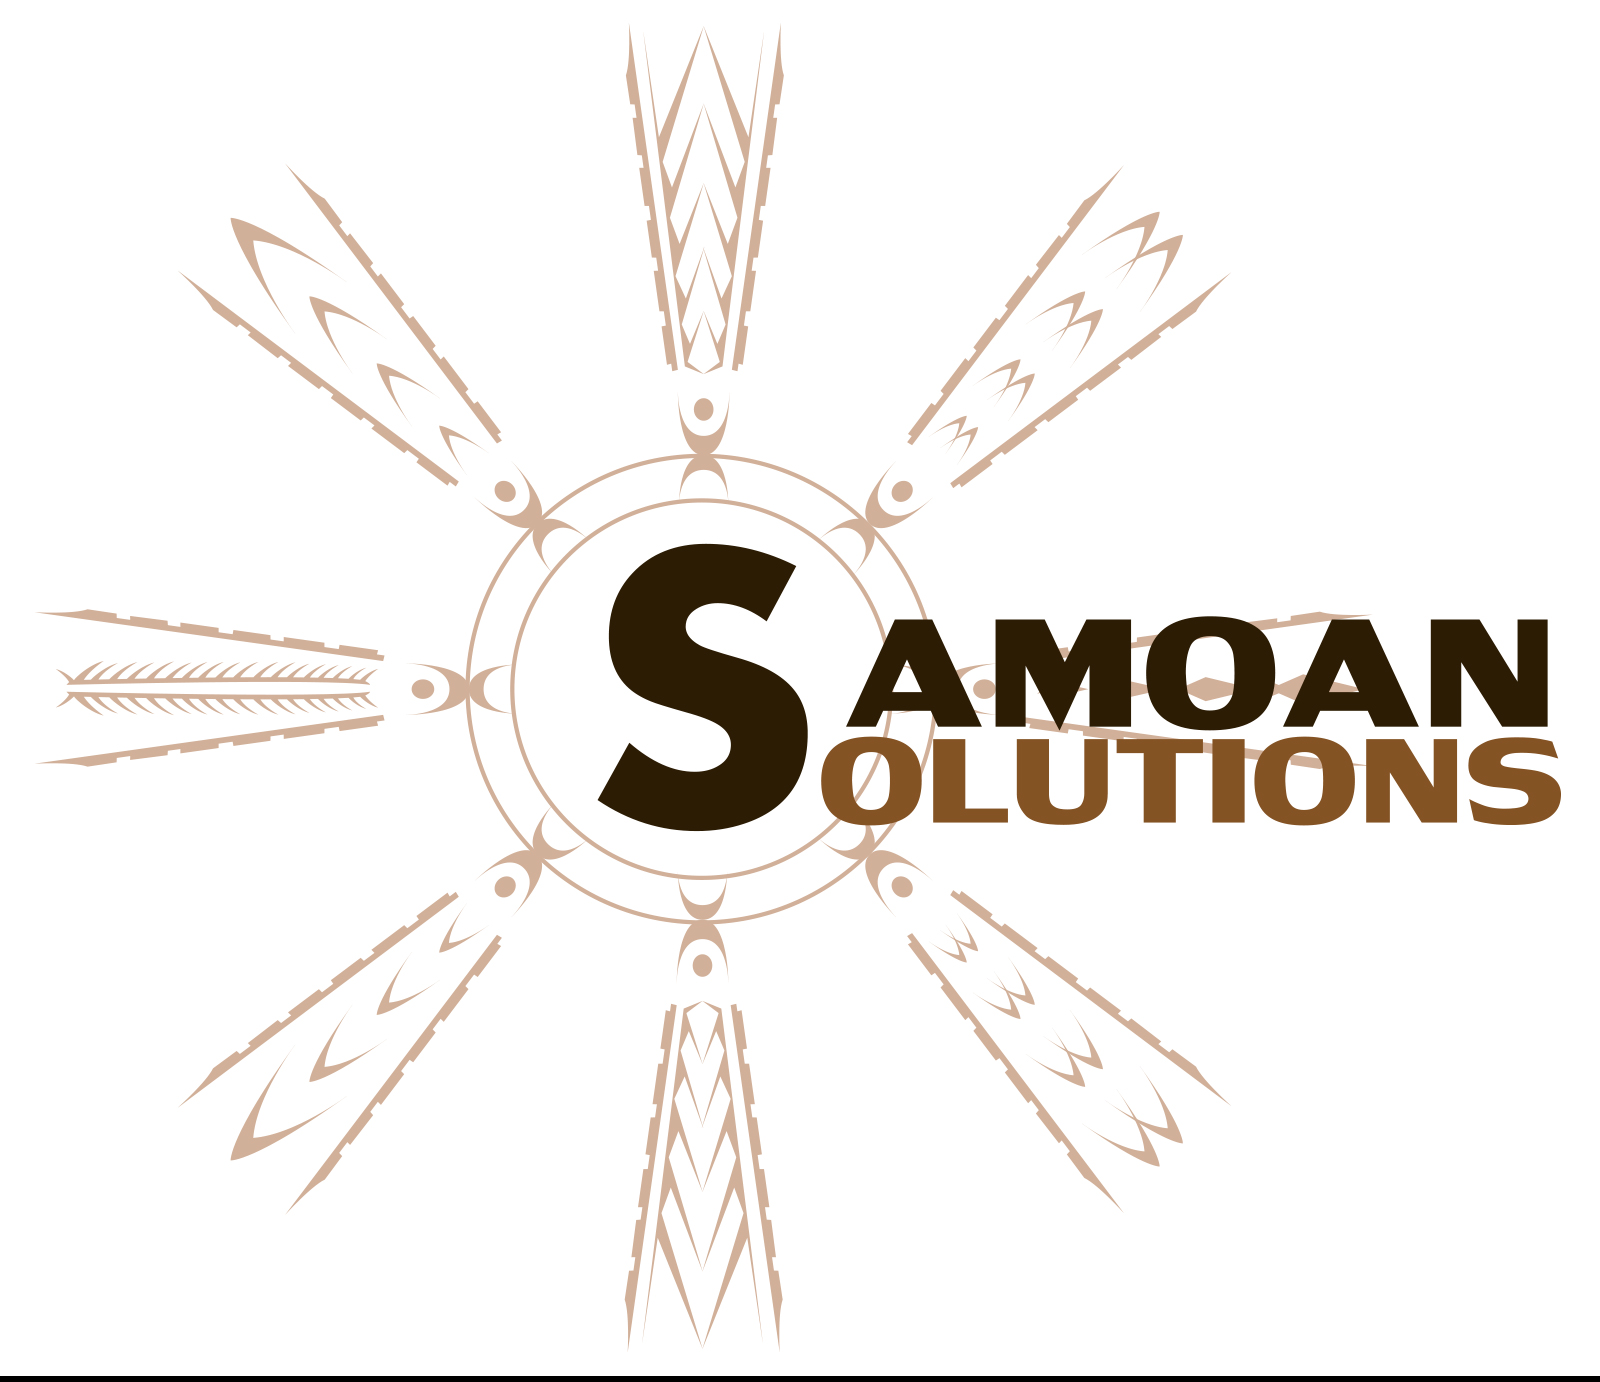 Samoan Solutions by Jon Apisa